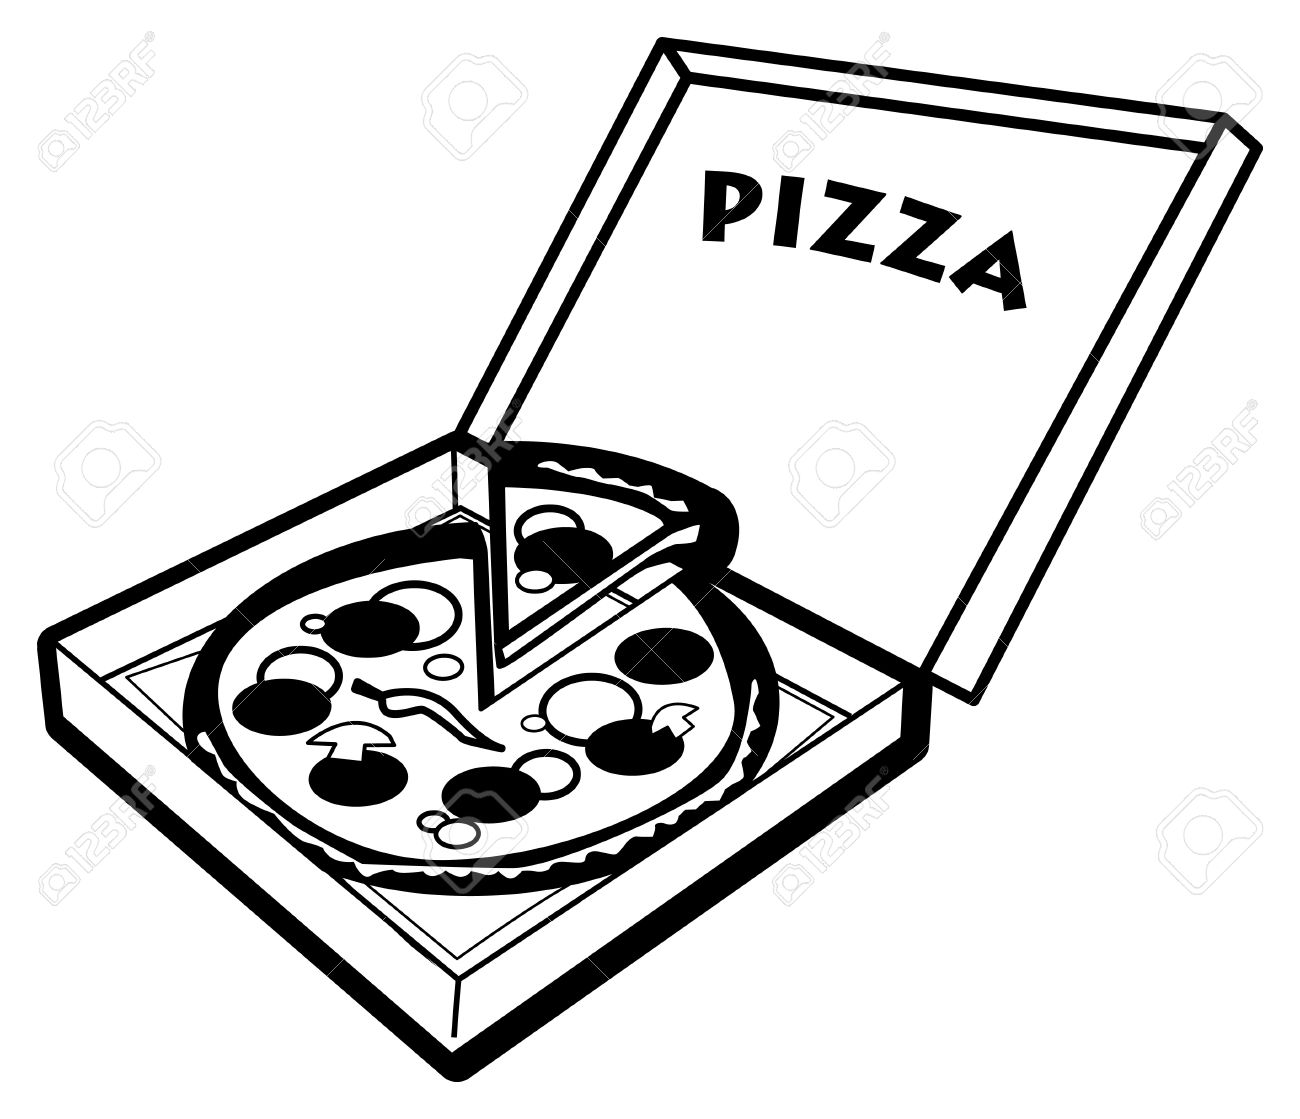 Best Pizza Clipart Black And White